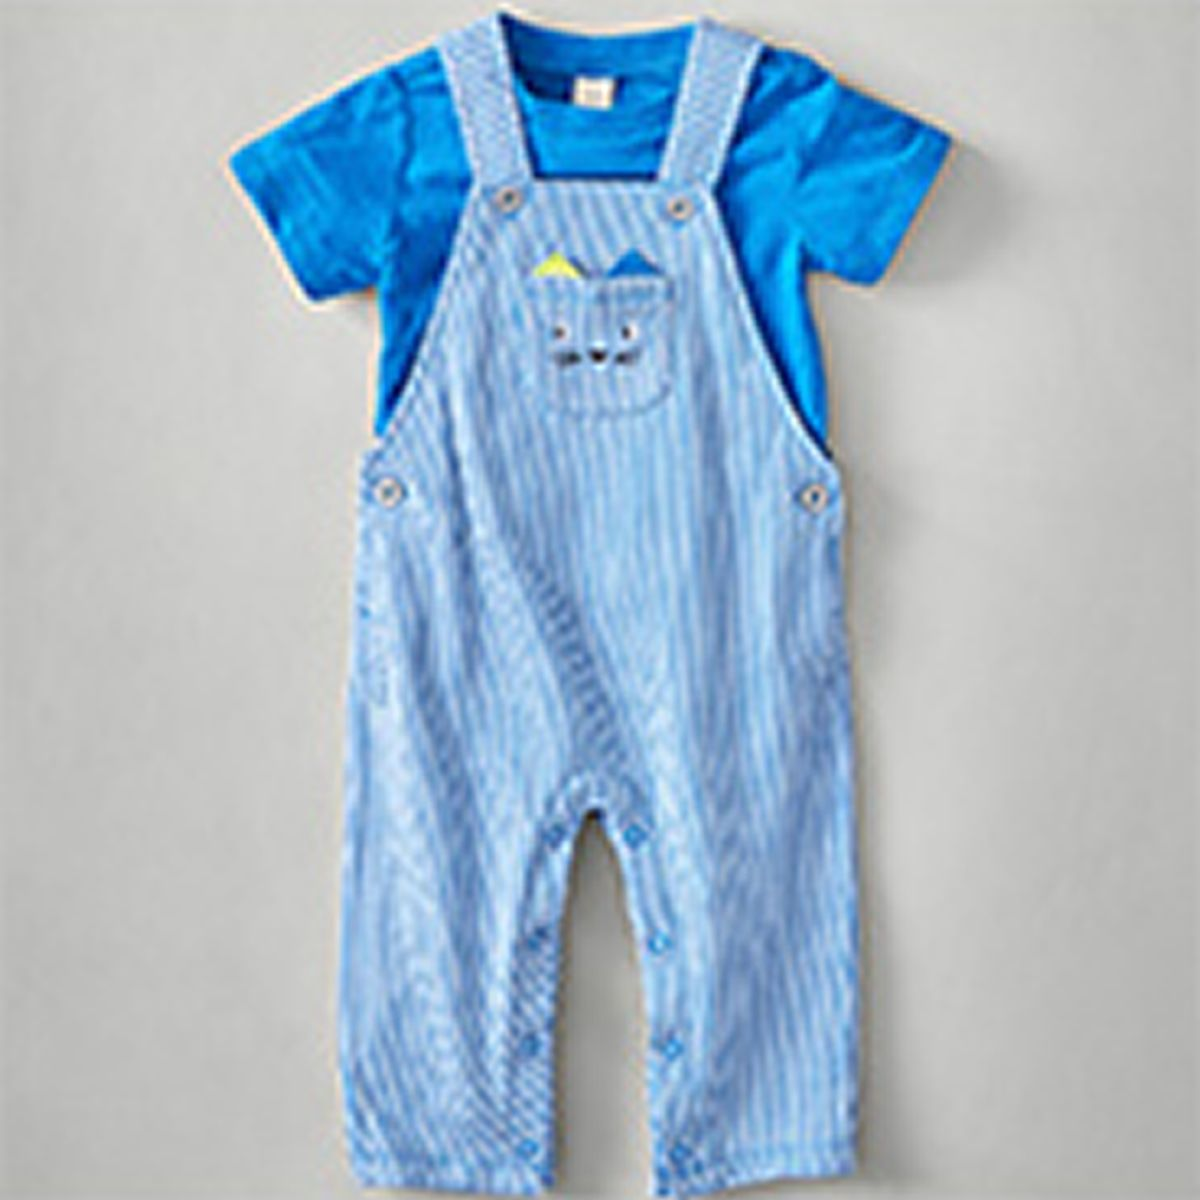 b5f89209637 Newborn Clothes - Macy s